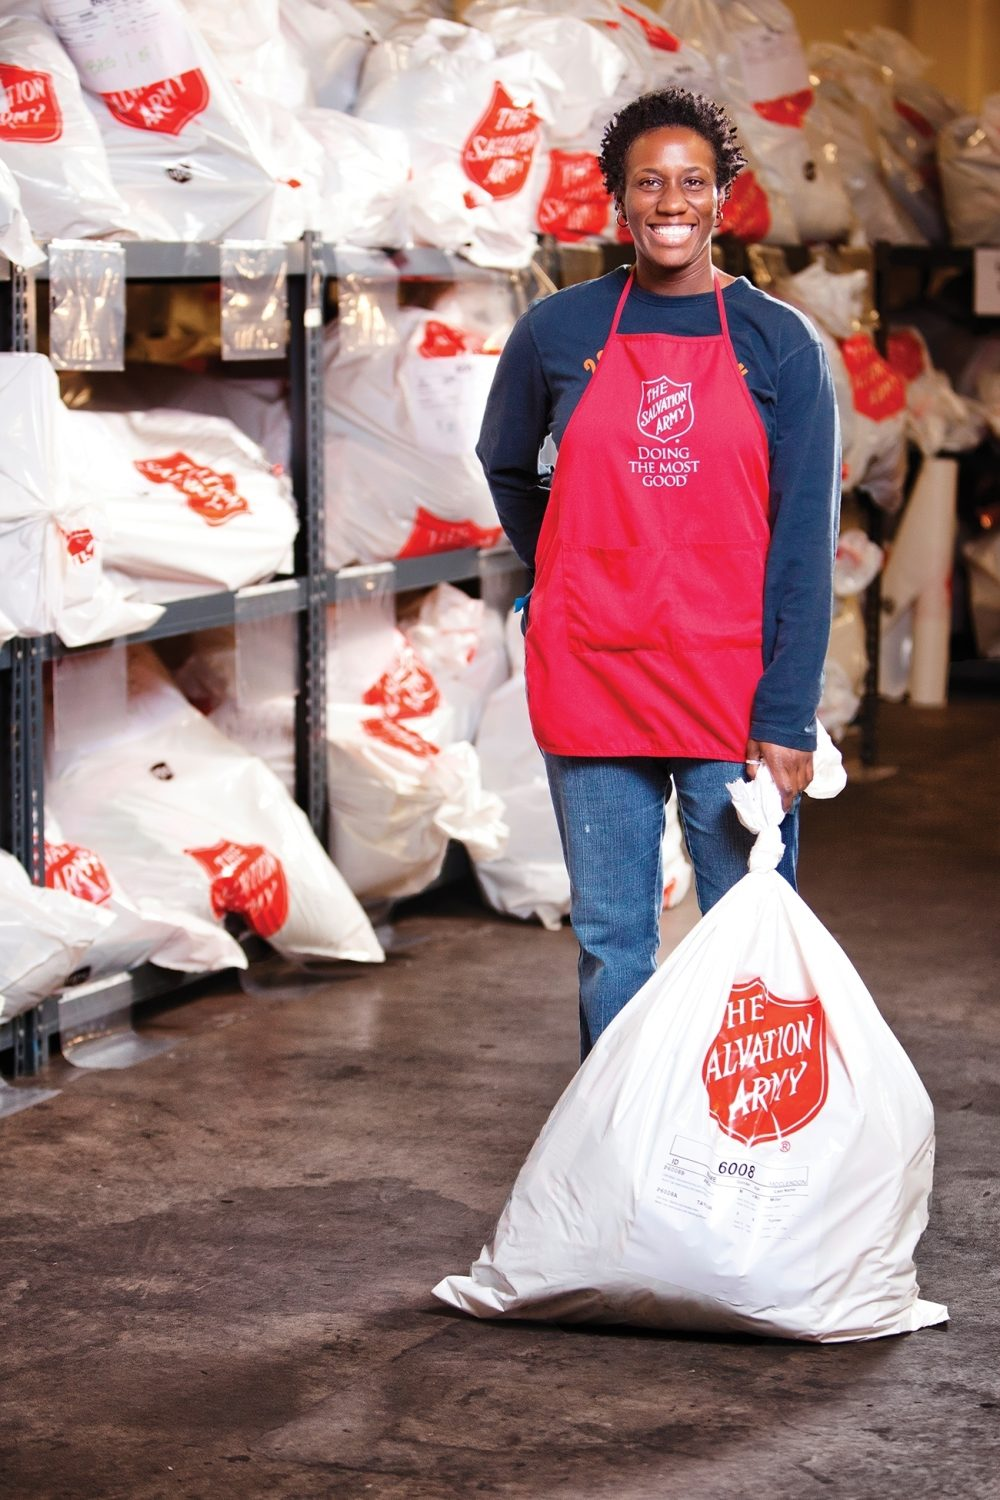 """Volunteers like this woman are critical partners in helping fulfill the Army promise of """"Doing the Most Good."""""""